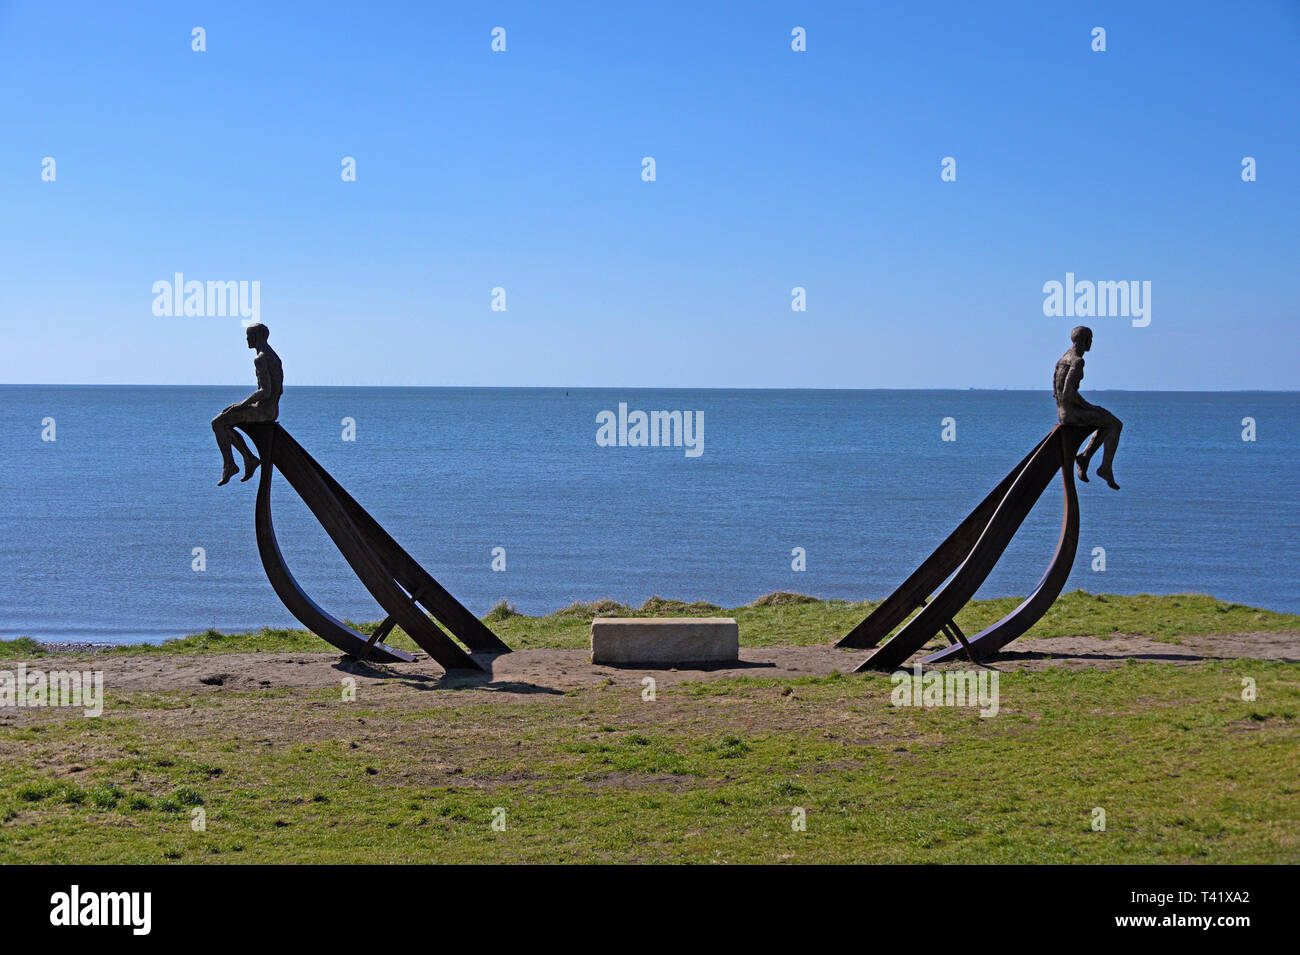 """Ship"", metal sculpture by Anna Gillespie, 2019. Half Moon Bay, Heysham, Lancashire, England, United Kingdom, Europe. Stock Photo"